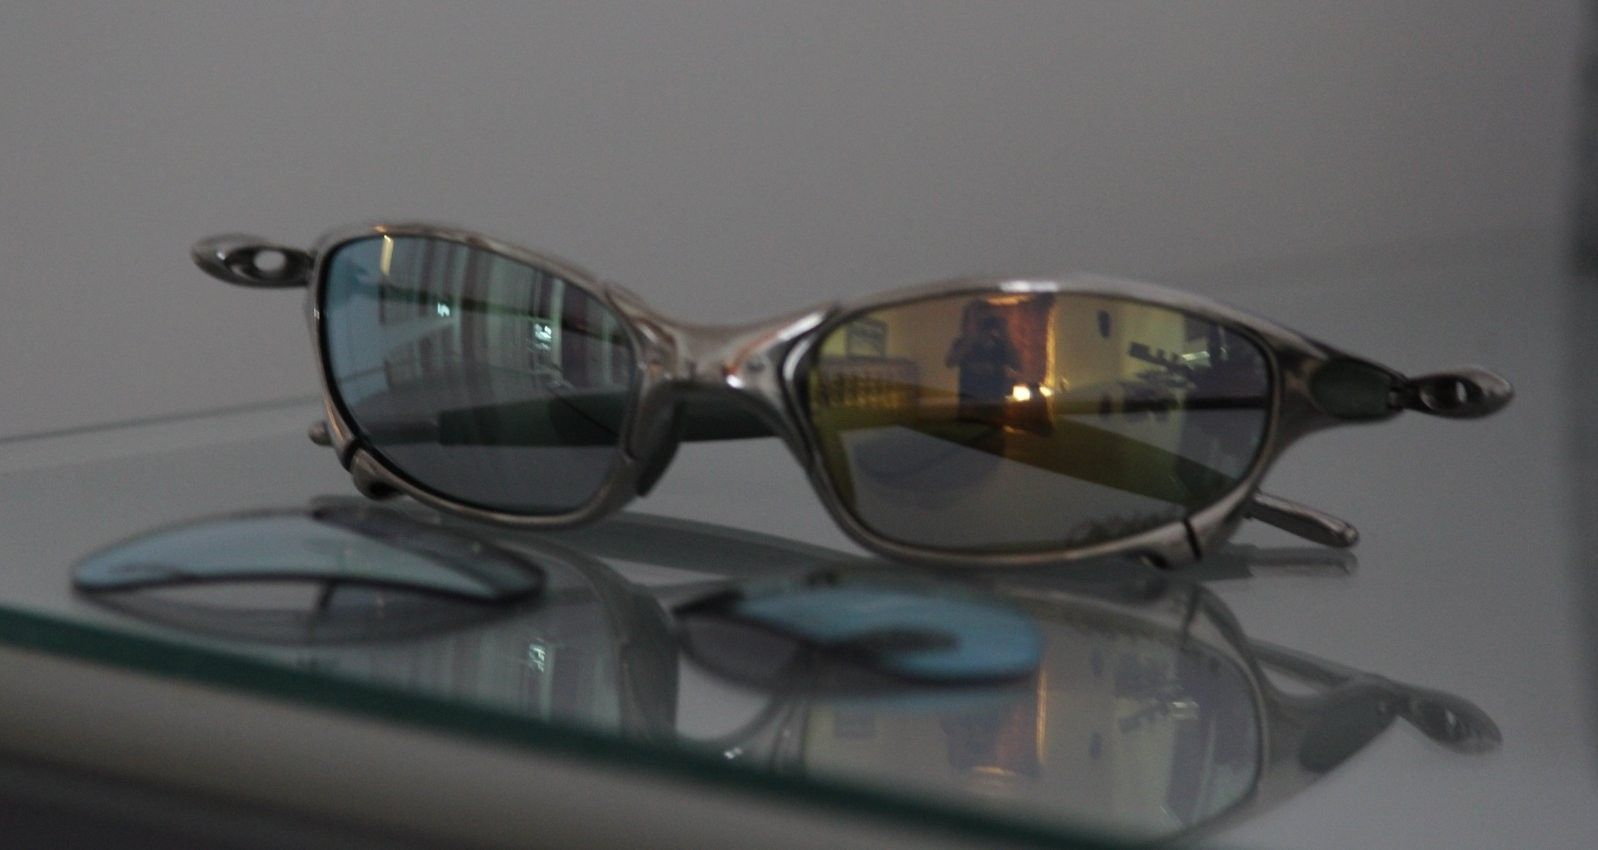 Emerald Slate Lenses / Difference between tints - IMG_8252 - Edited.jpg